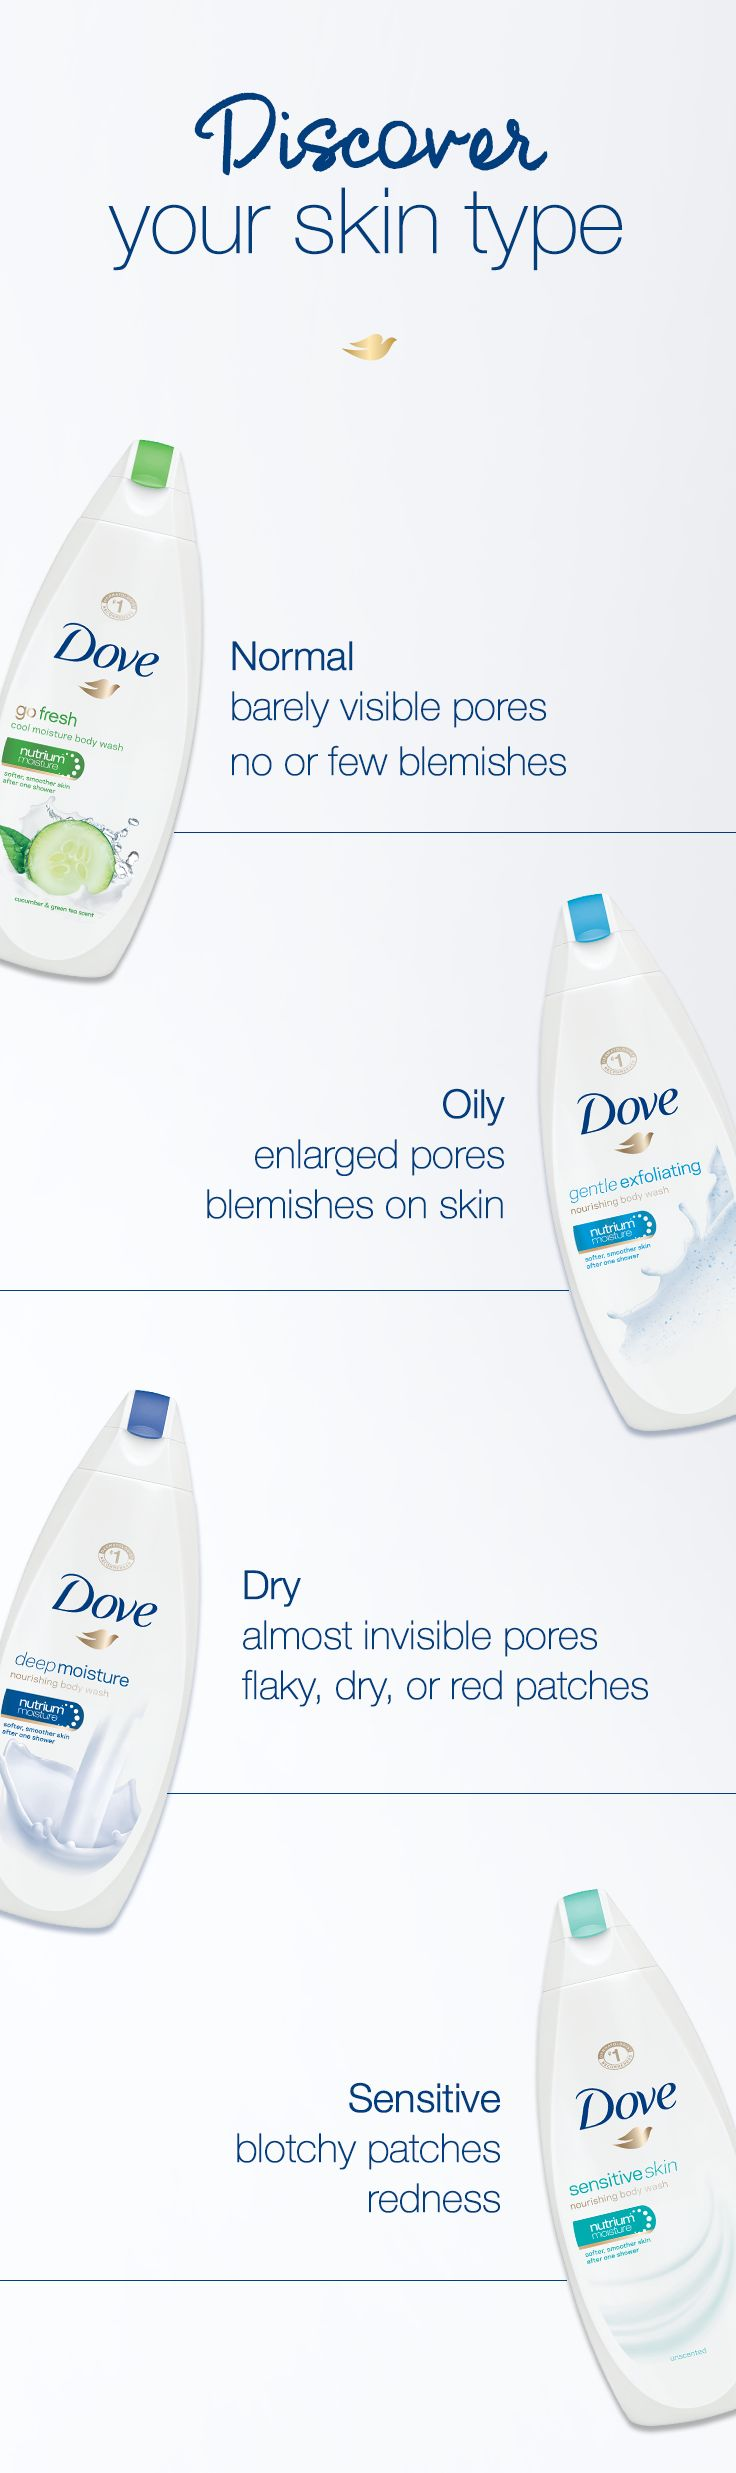 In order to best care for your skin, you first need to identify what kind of skin you have. Use these quick tips to pinpoint your skin type and choose the best Dove Body Wash for your beauty routine.